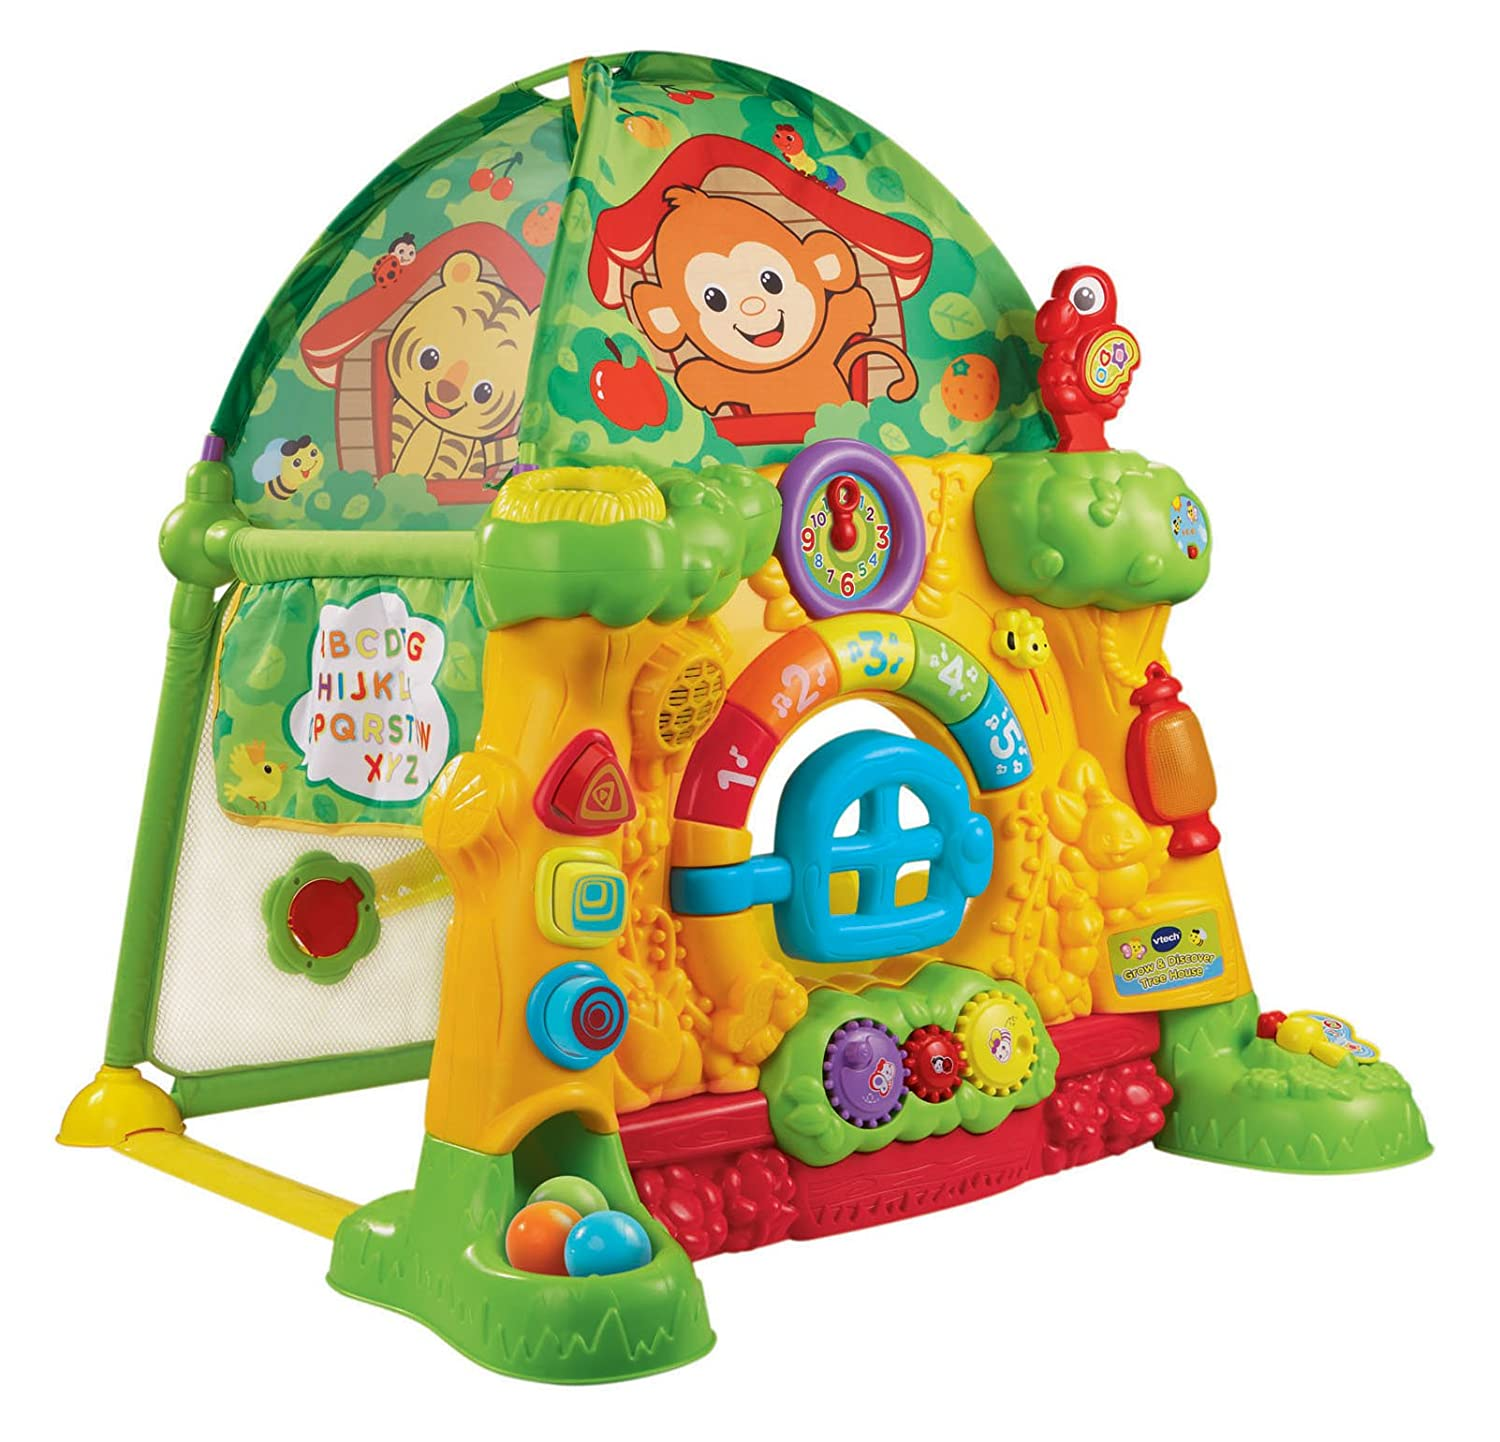 Best Toys For An 18 Month Old Boy